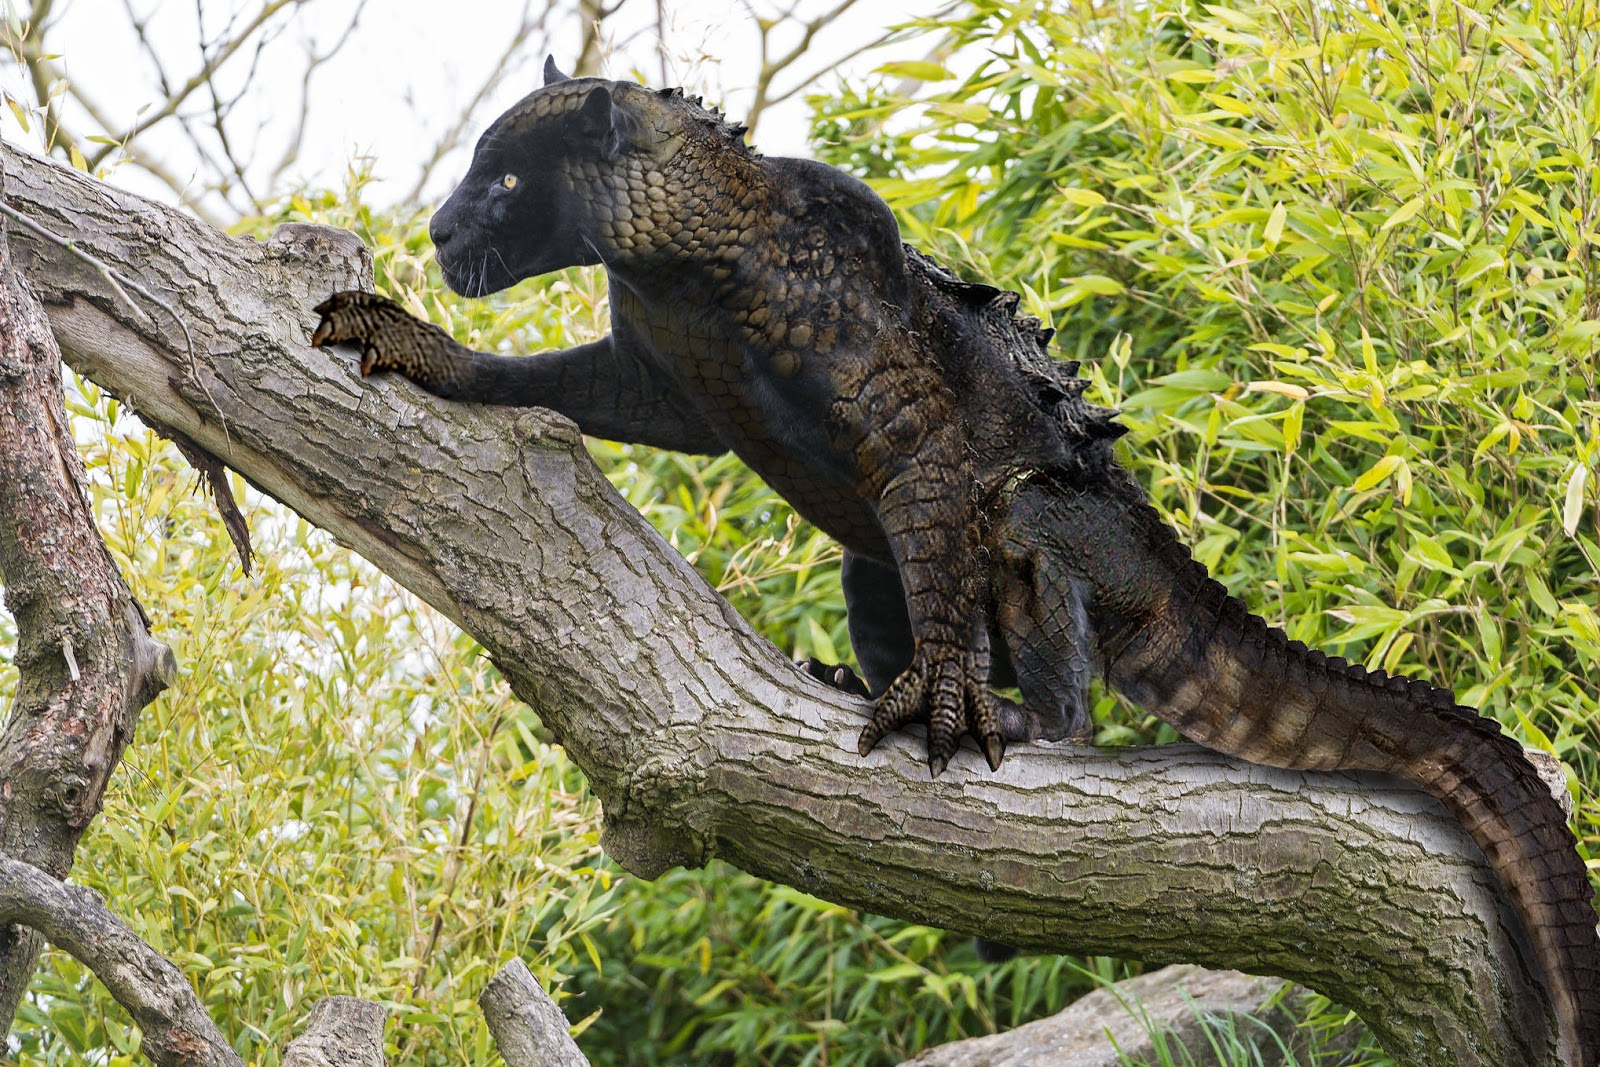 hybrid animals To create a natural macropod hybrid, young animals of one species have been transferred to the pouch of another so as to imprint into them the other species this hybrid was created by.